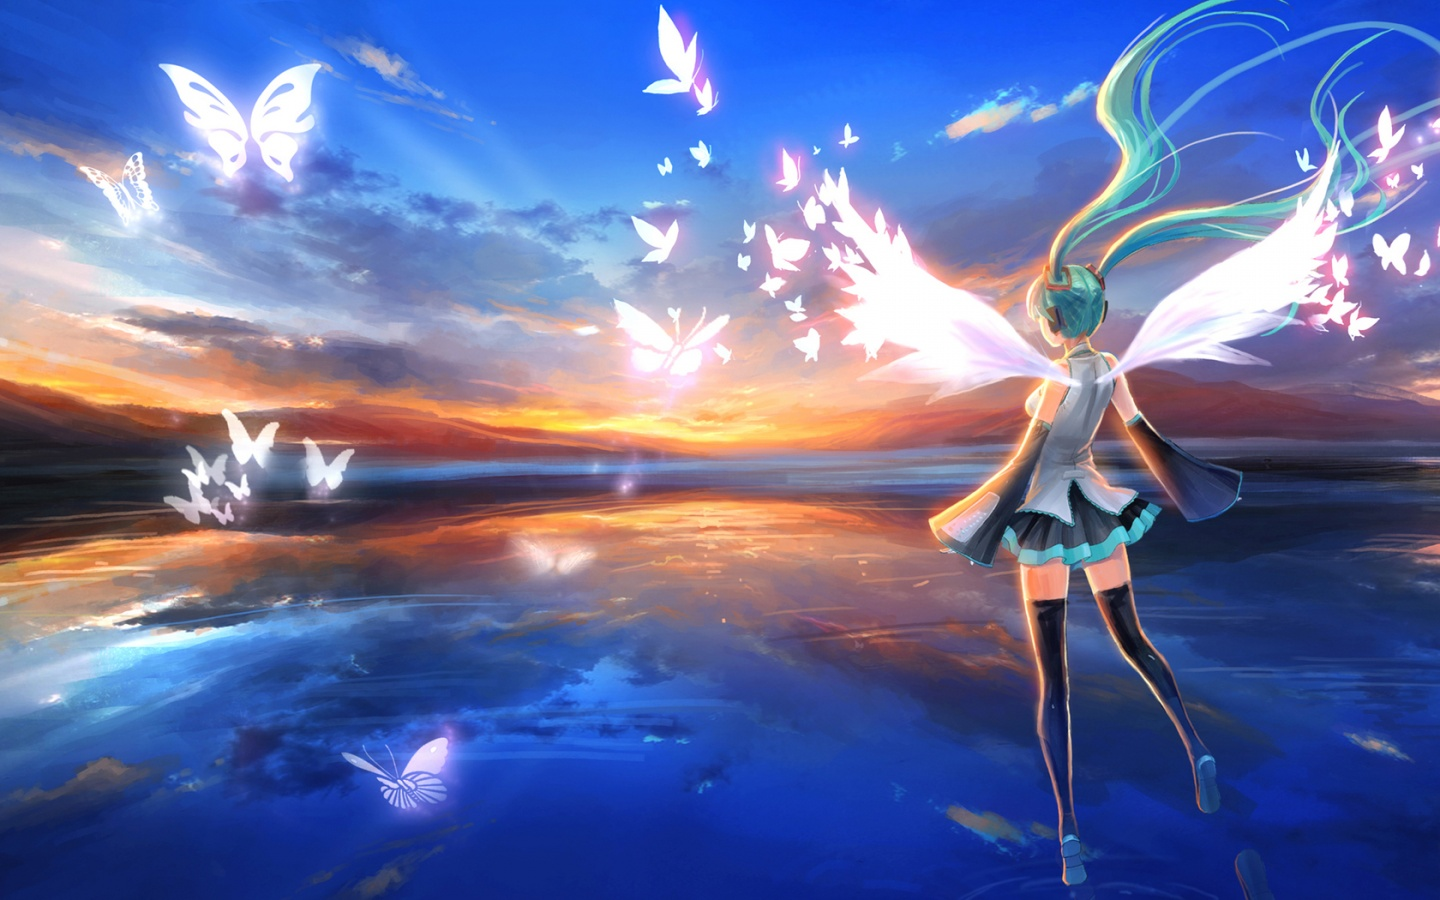 Beautiful anime girl and butterfly wallpapers 1440x900 - Beautiful girl anime wallpaper ...